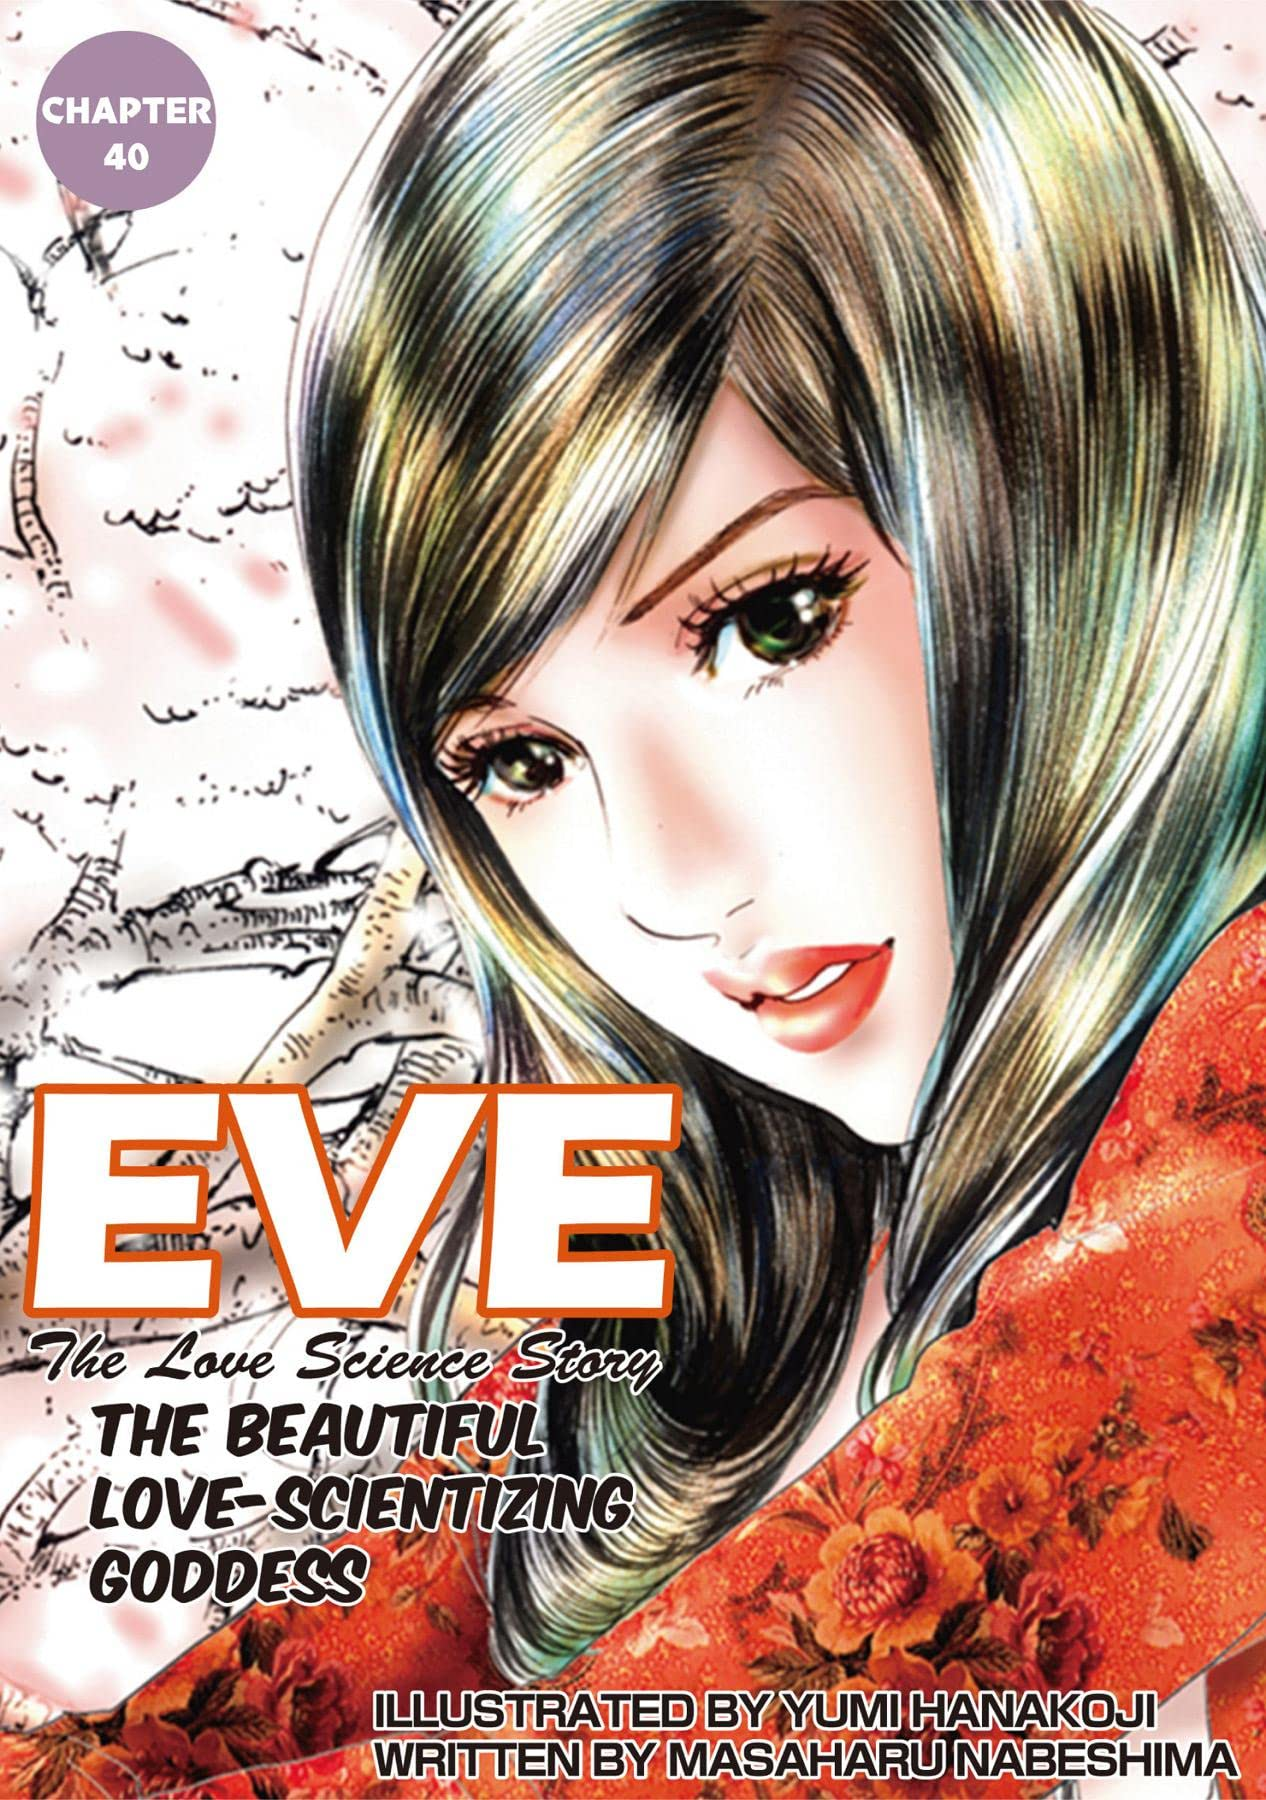 EVE:THE BEAUTIFUL LOVE-SCIENTIZING GODDESS #40